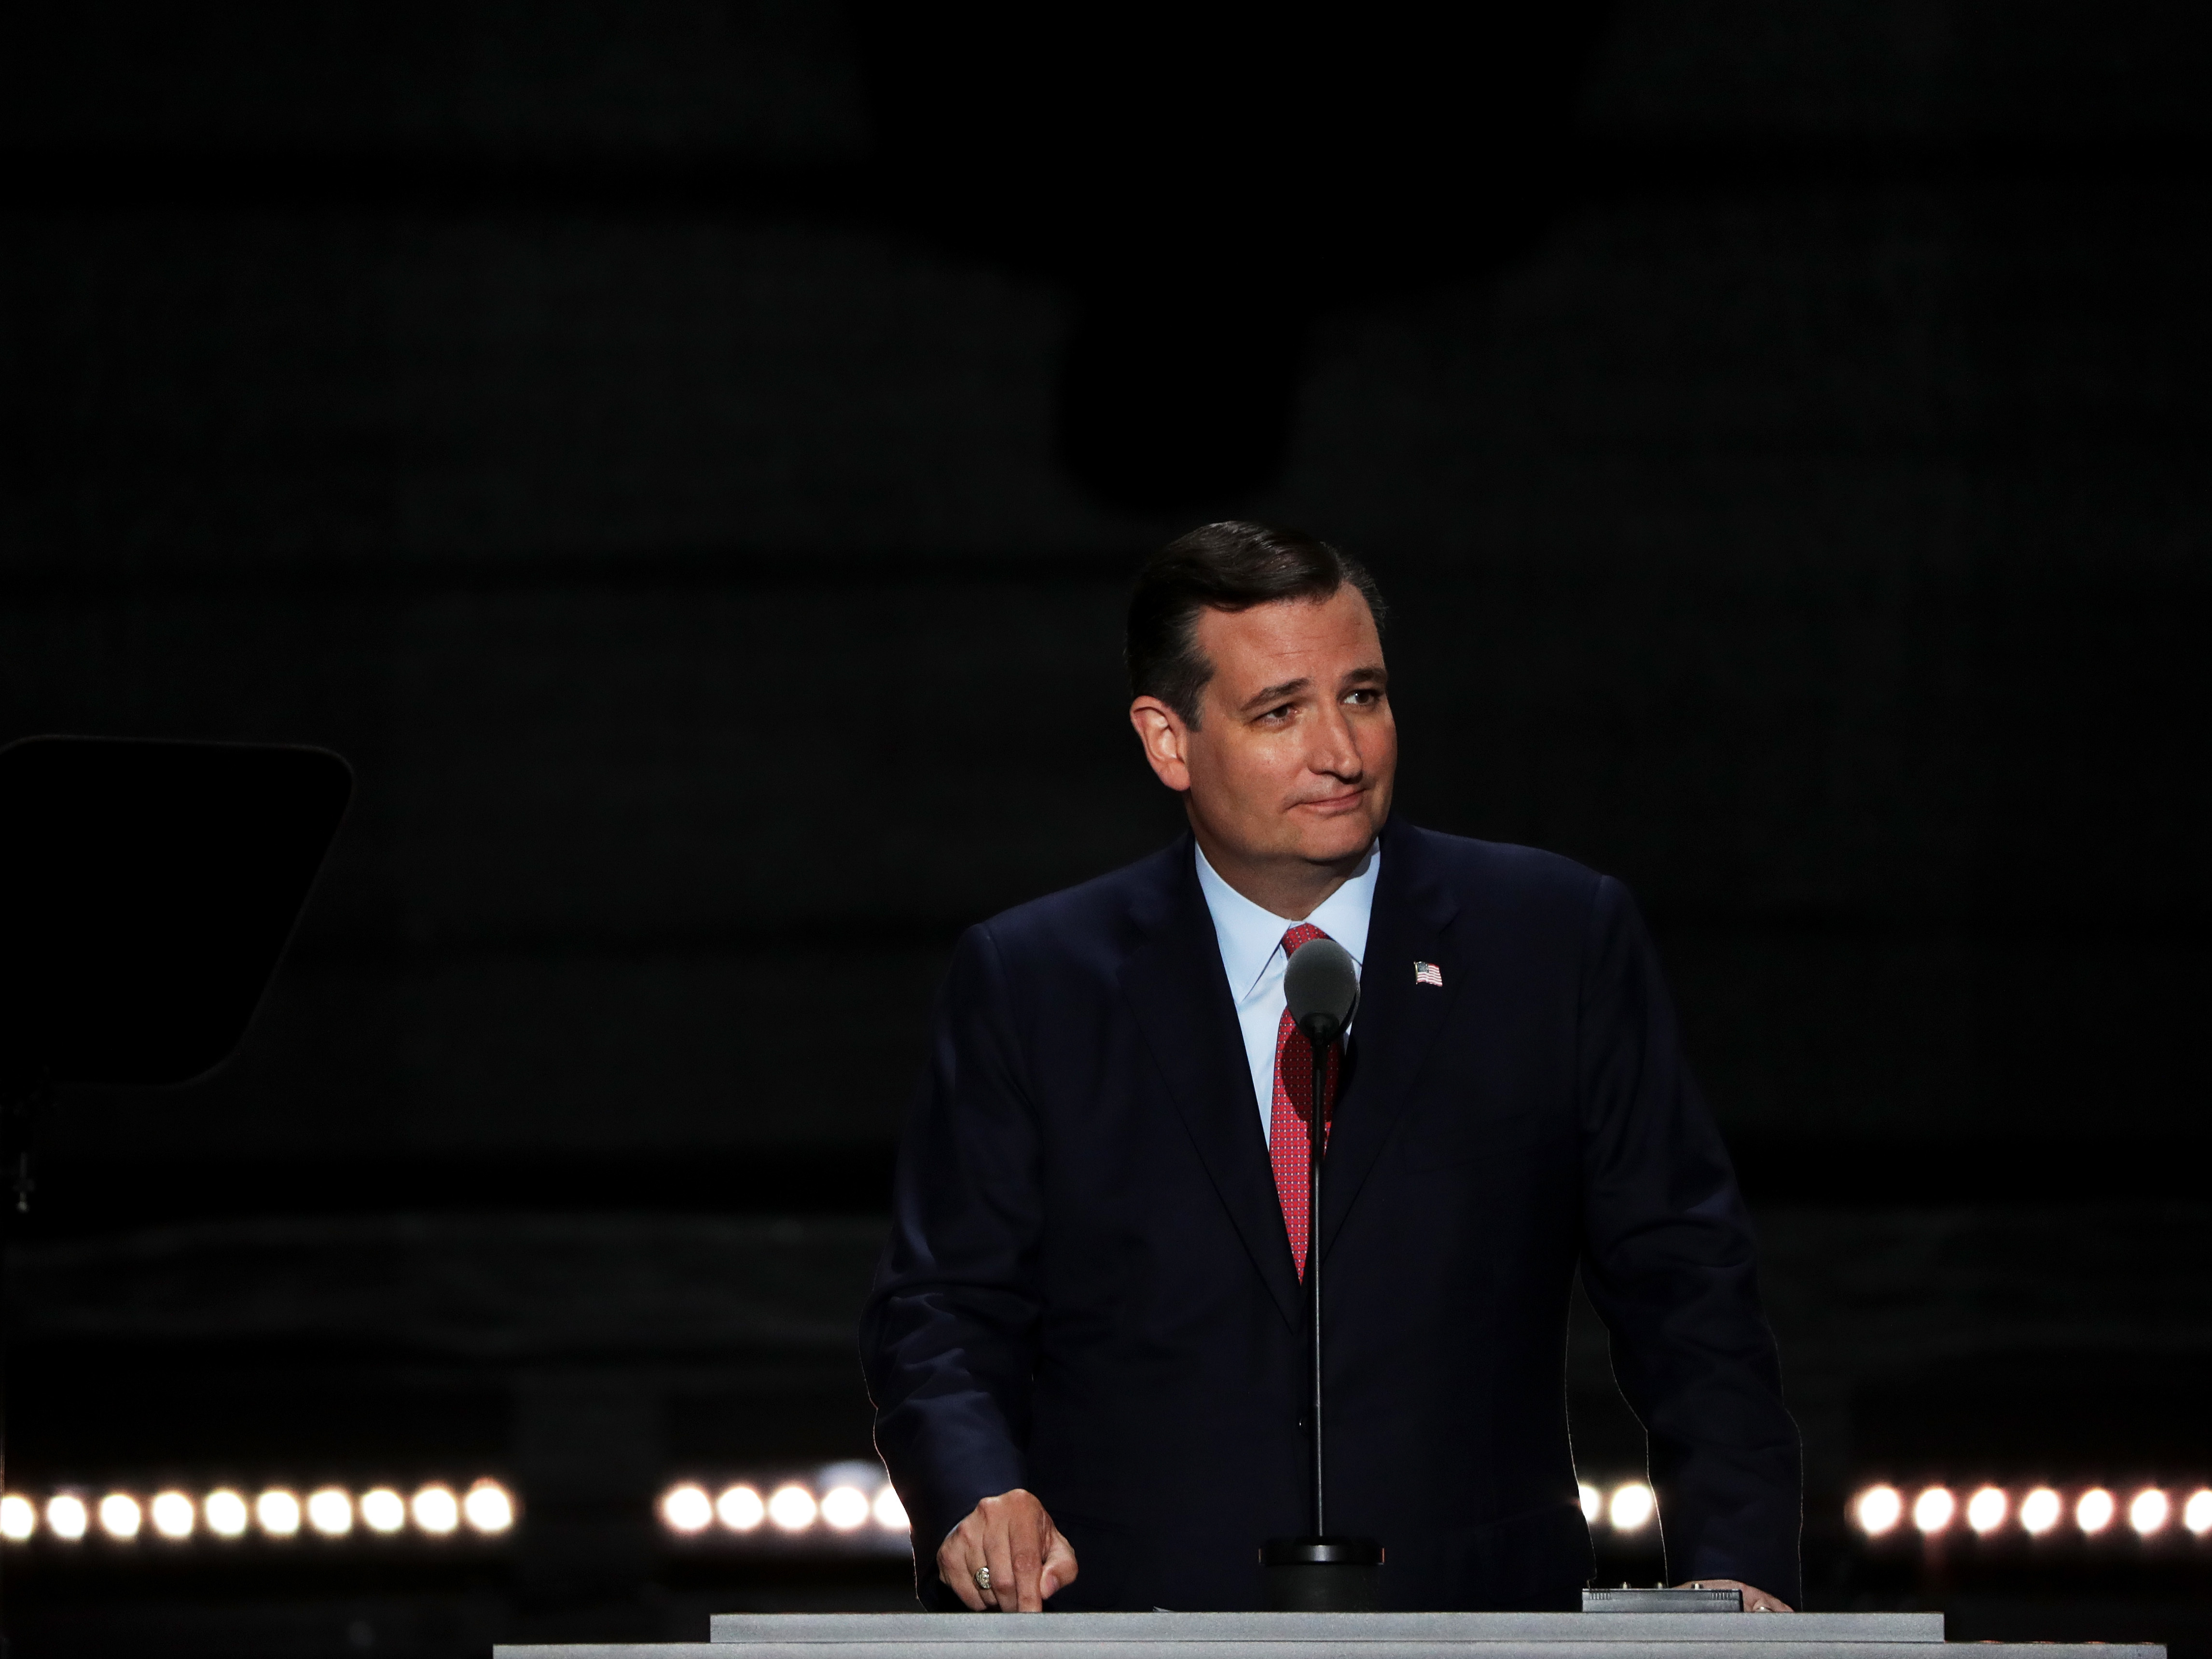 Cruz finally endorses Trump for U.S. president